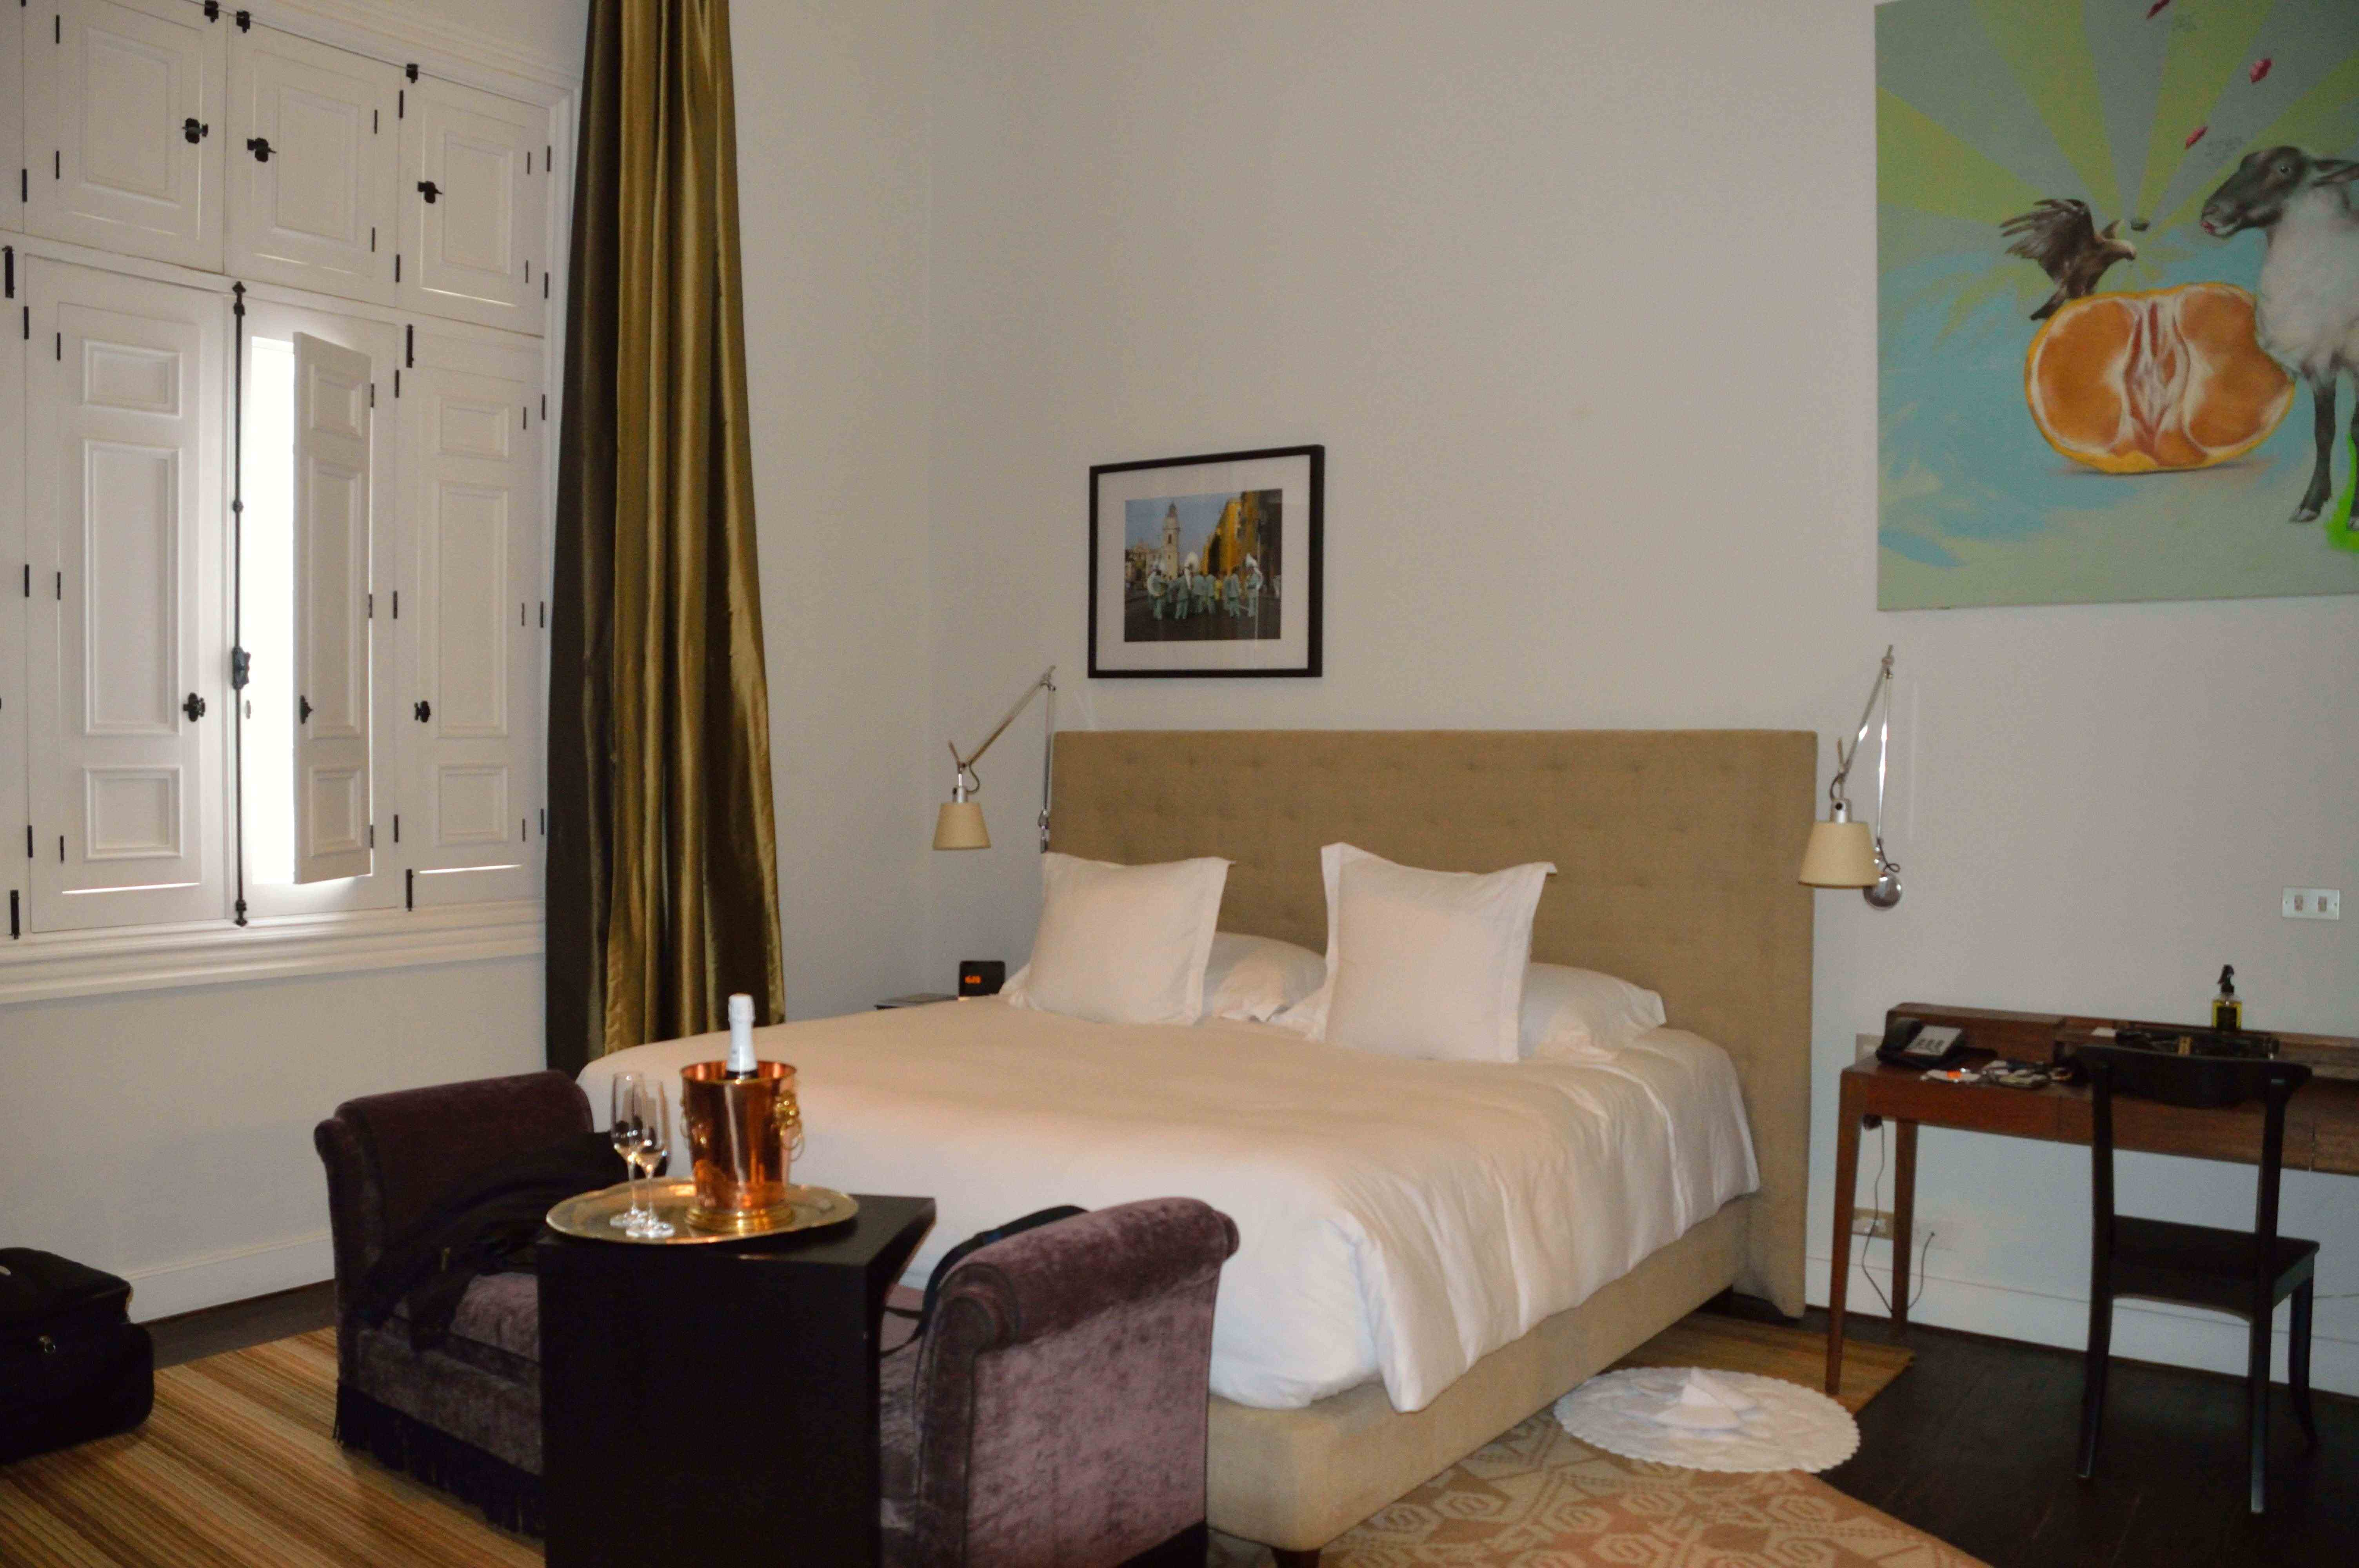 Bohemian little boutique hotel in Barranco (Lima), Peru. Loved all the little touches and wonderful art in the restored old summer home.